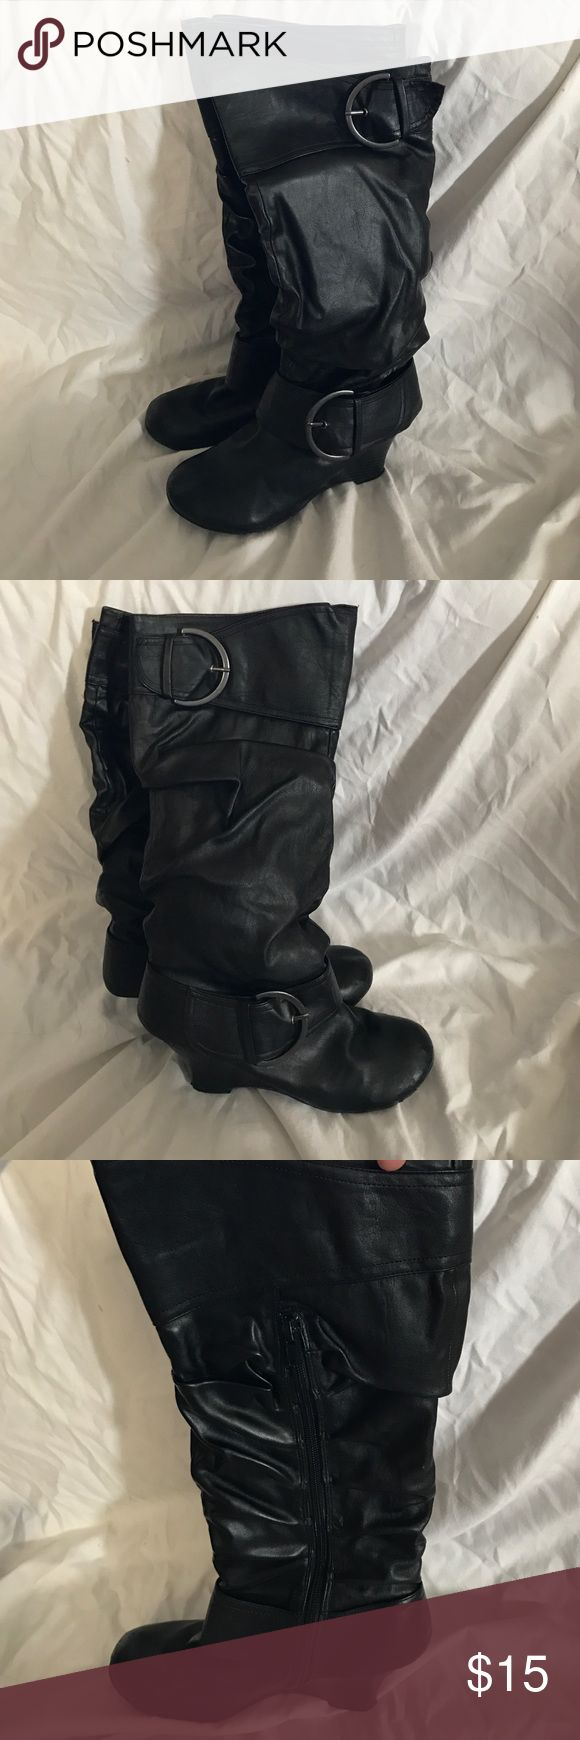 """Black heeled boot Black scrunchy style boots. Heels are approximately 3"""". Lightly worn but still have many more miles in them. UNIONBAY Shoes Heeled Boots"""